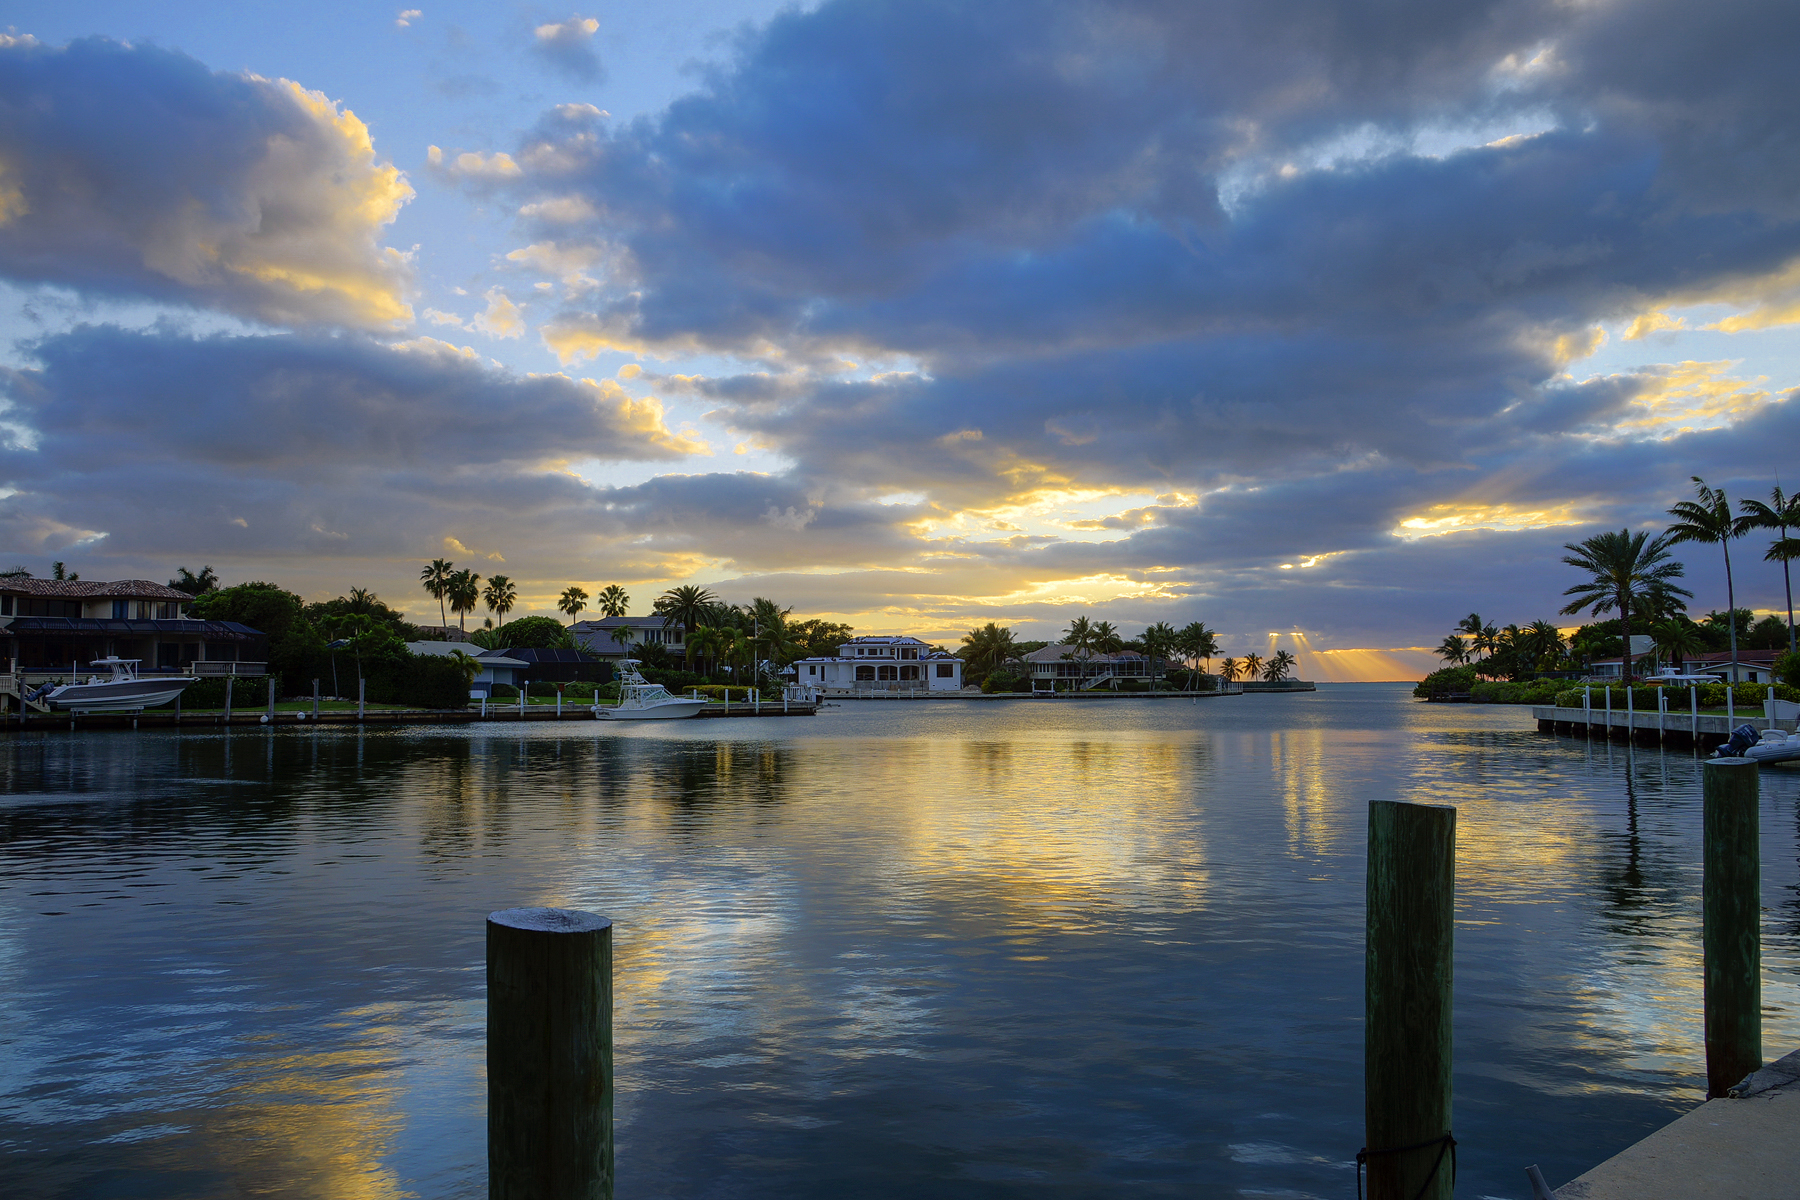 Single Family Home for Sale at Stunning Sunsets from Waterfront Property at Ocean Reef 1 Knoll Lane Ocean Reef Community, Key Largo, Florida, 33037 United States